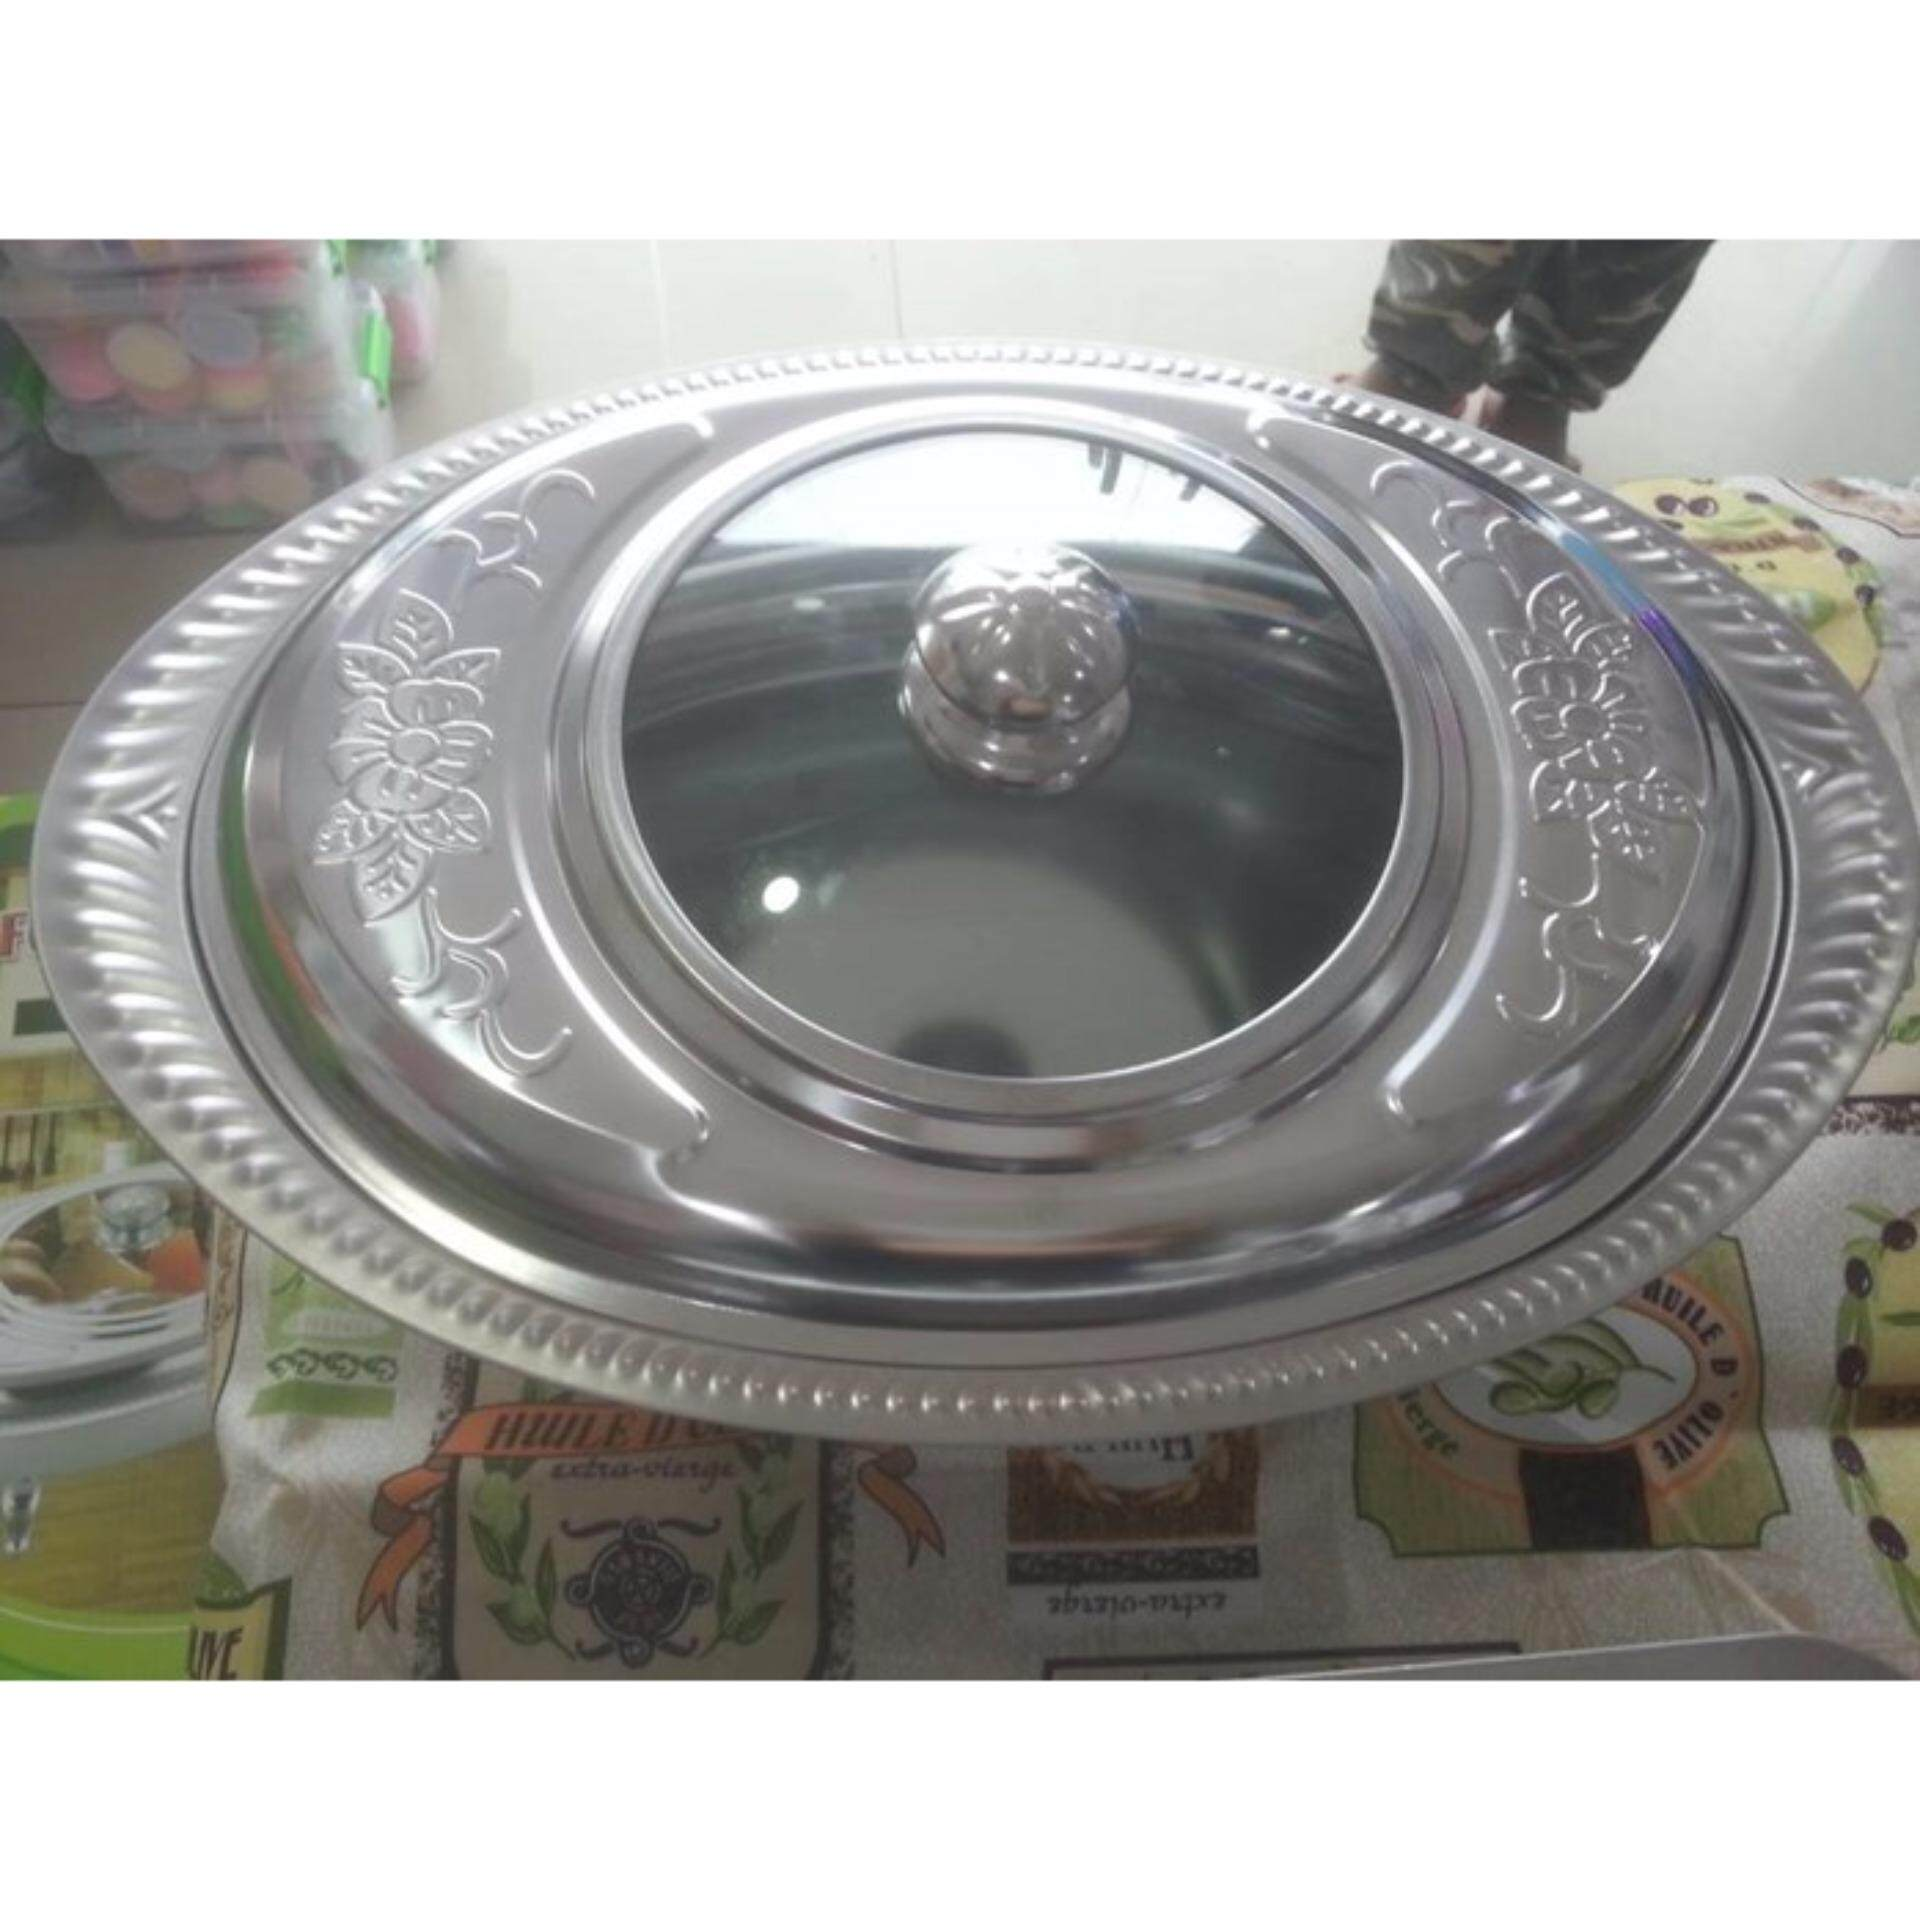 Fast Food Chafing Stainless Steel Buffet Food Container Dishes Oval